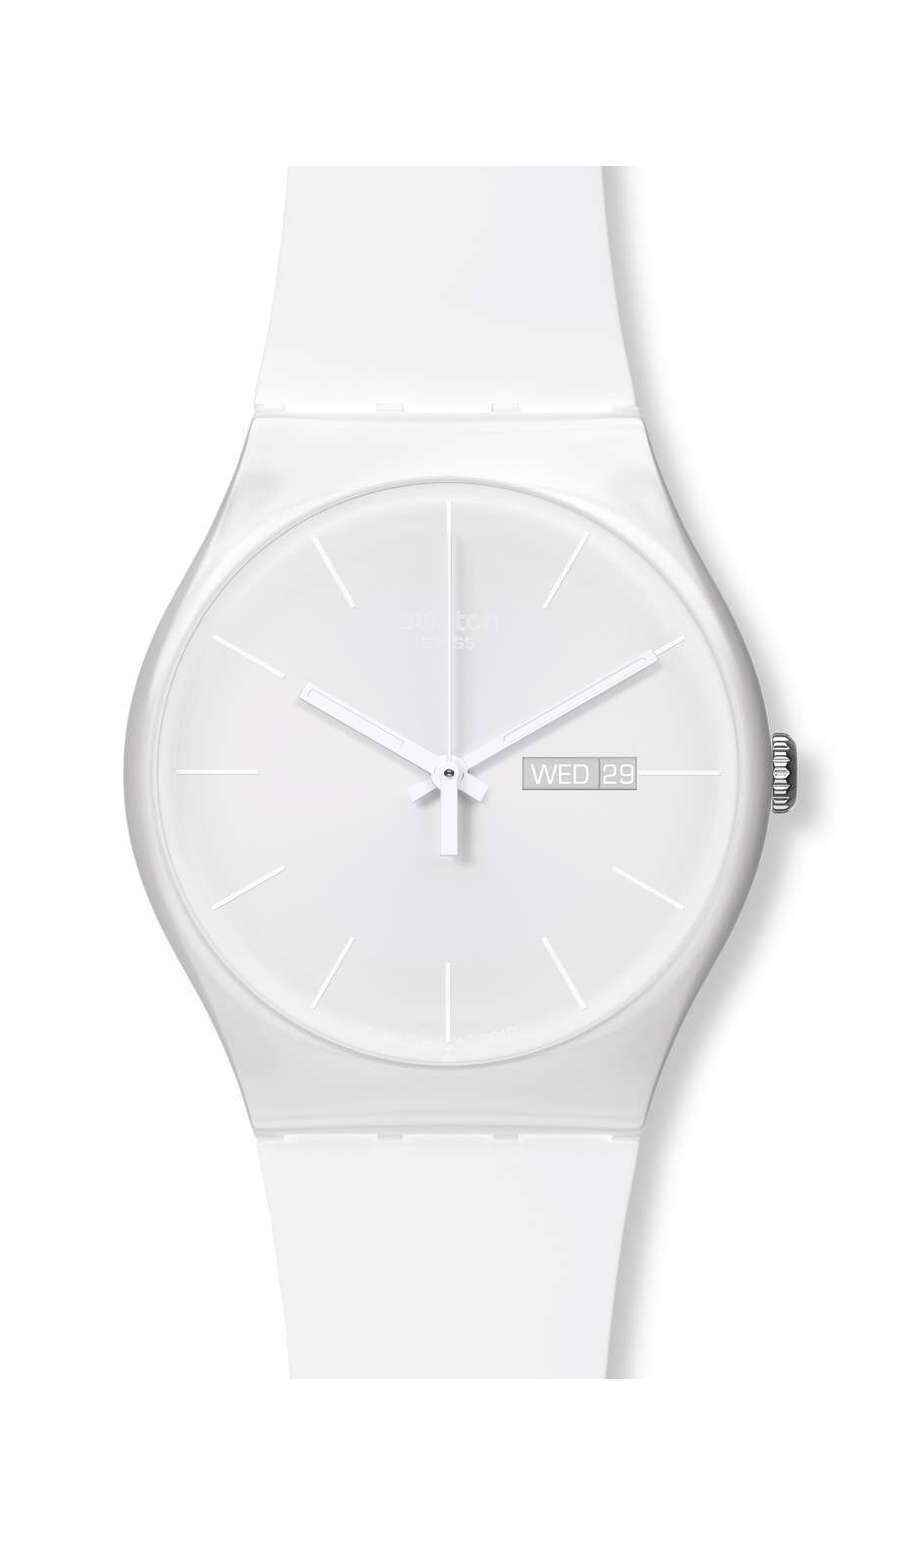 Swatch - WHITE REBEL - 1